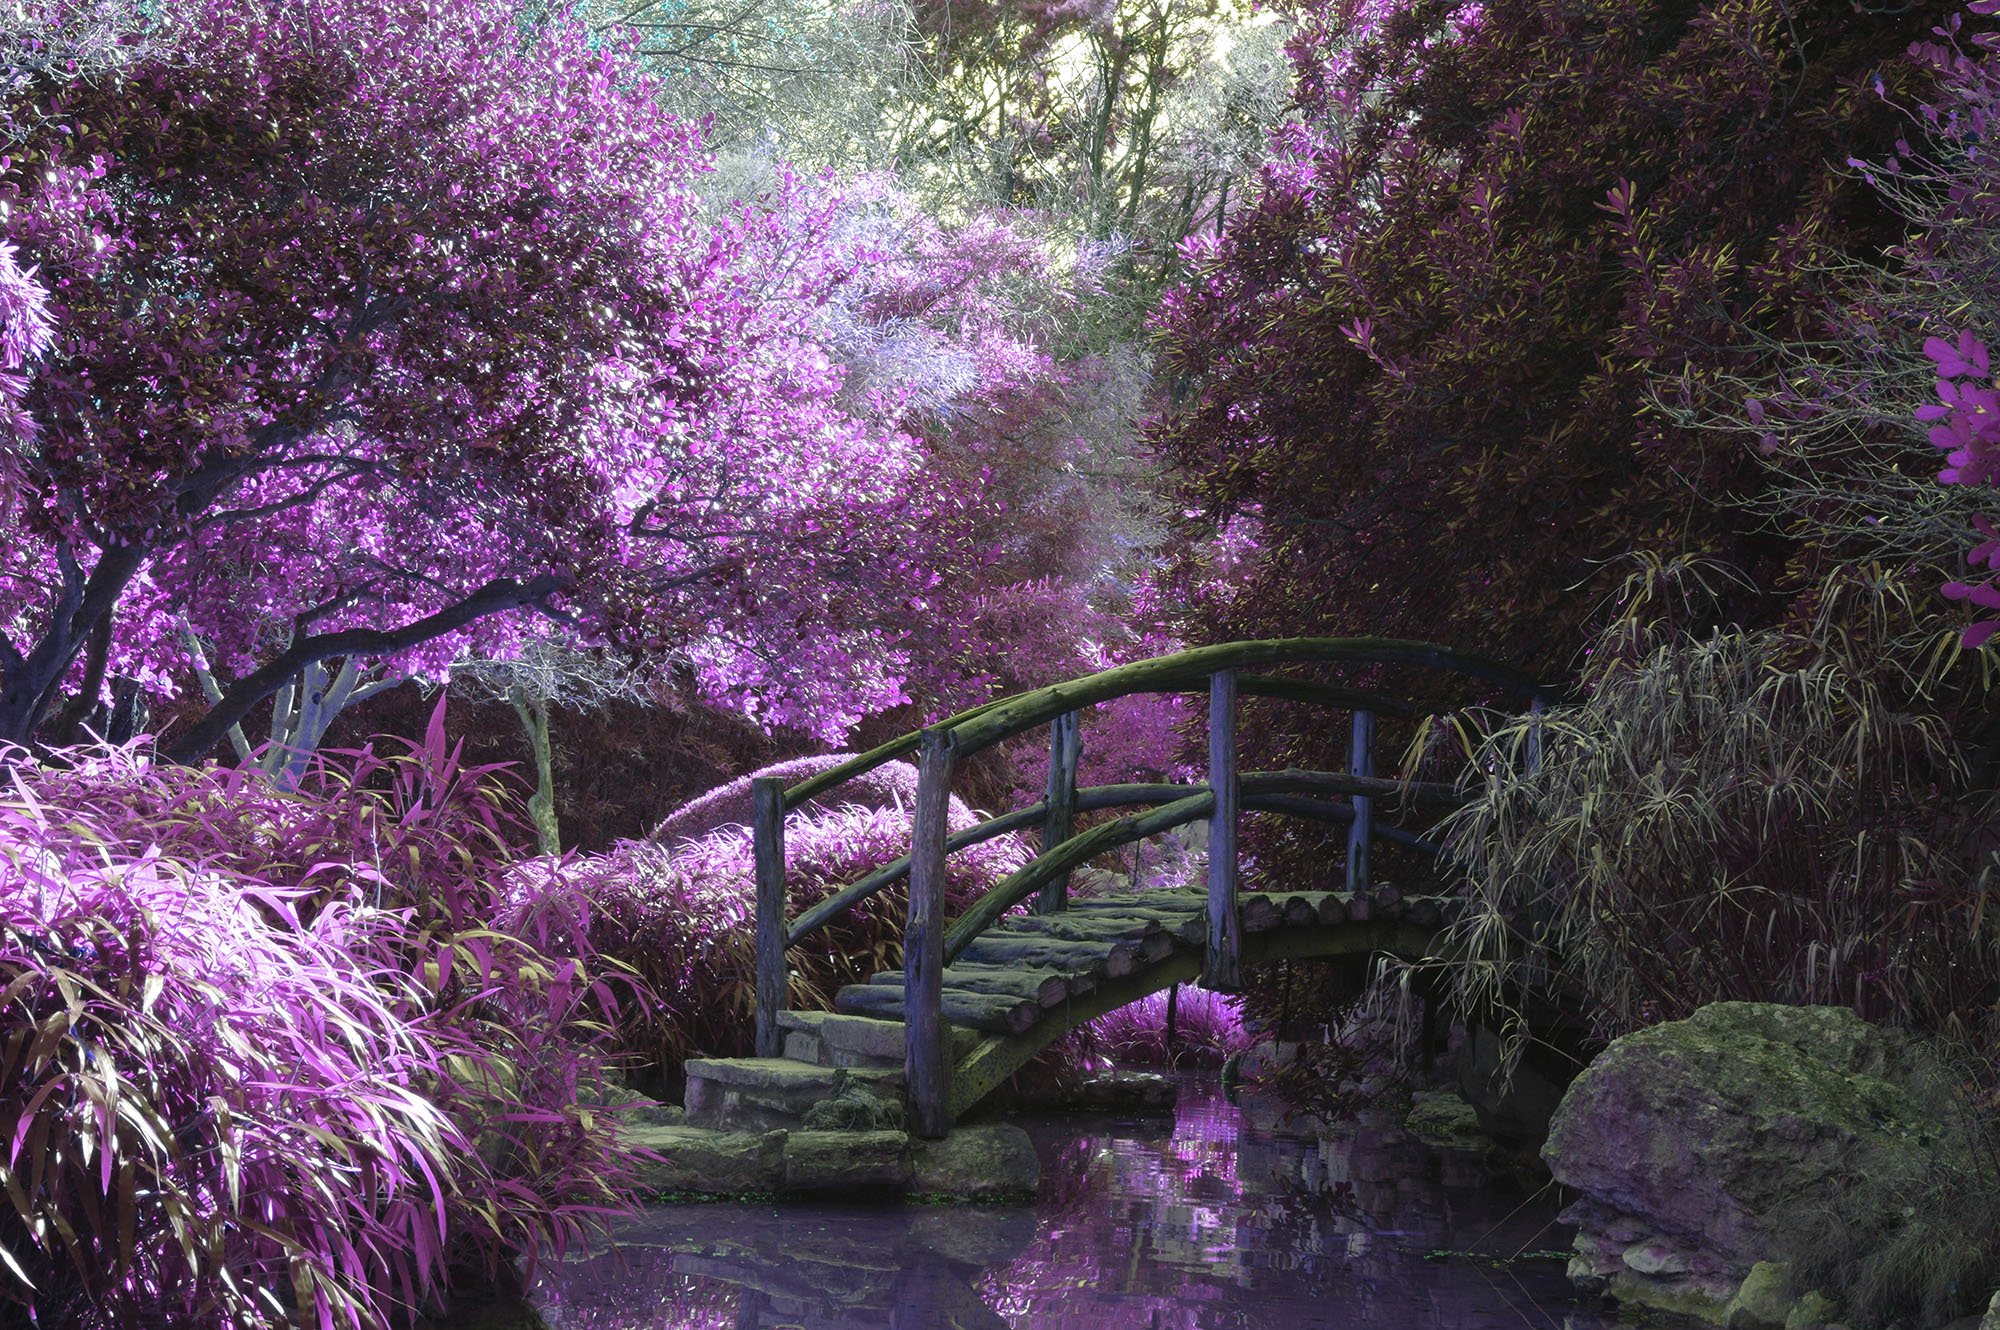 wooden bridge among pink blossomed trees